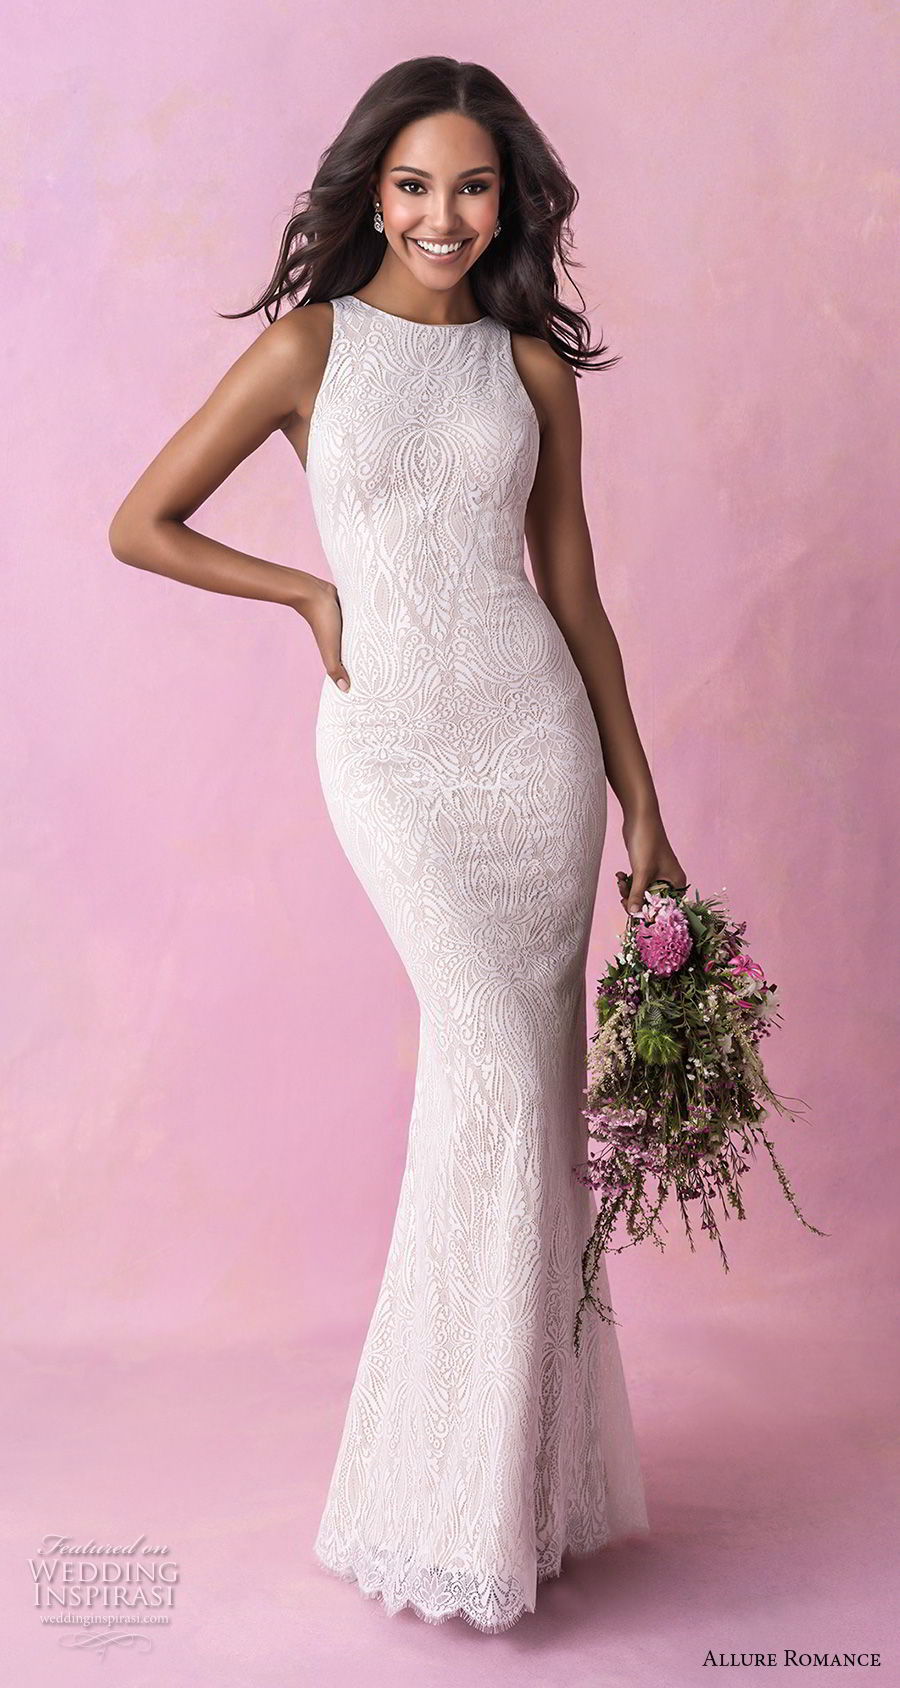 allure romance fall 2018 bridal sleeveless halter jewel neck full embellishment elegant sheath wedding dress low open back sweep train (6) mv